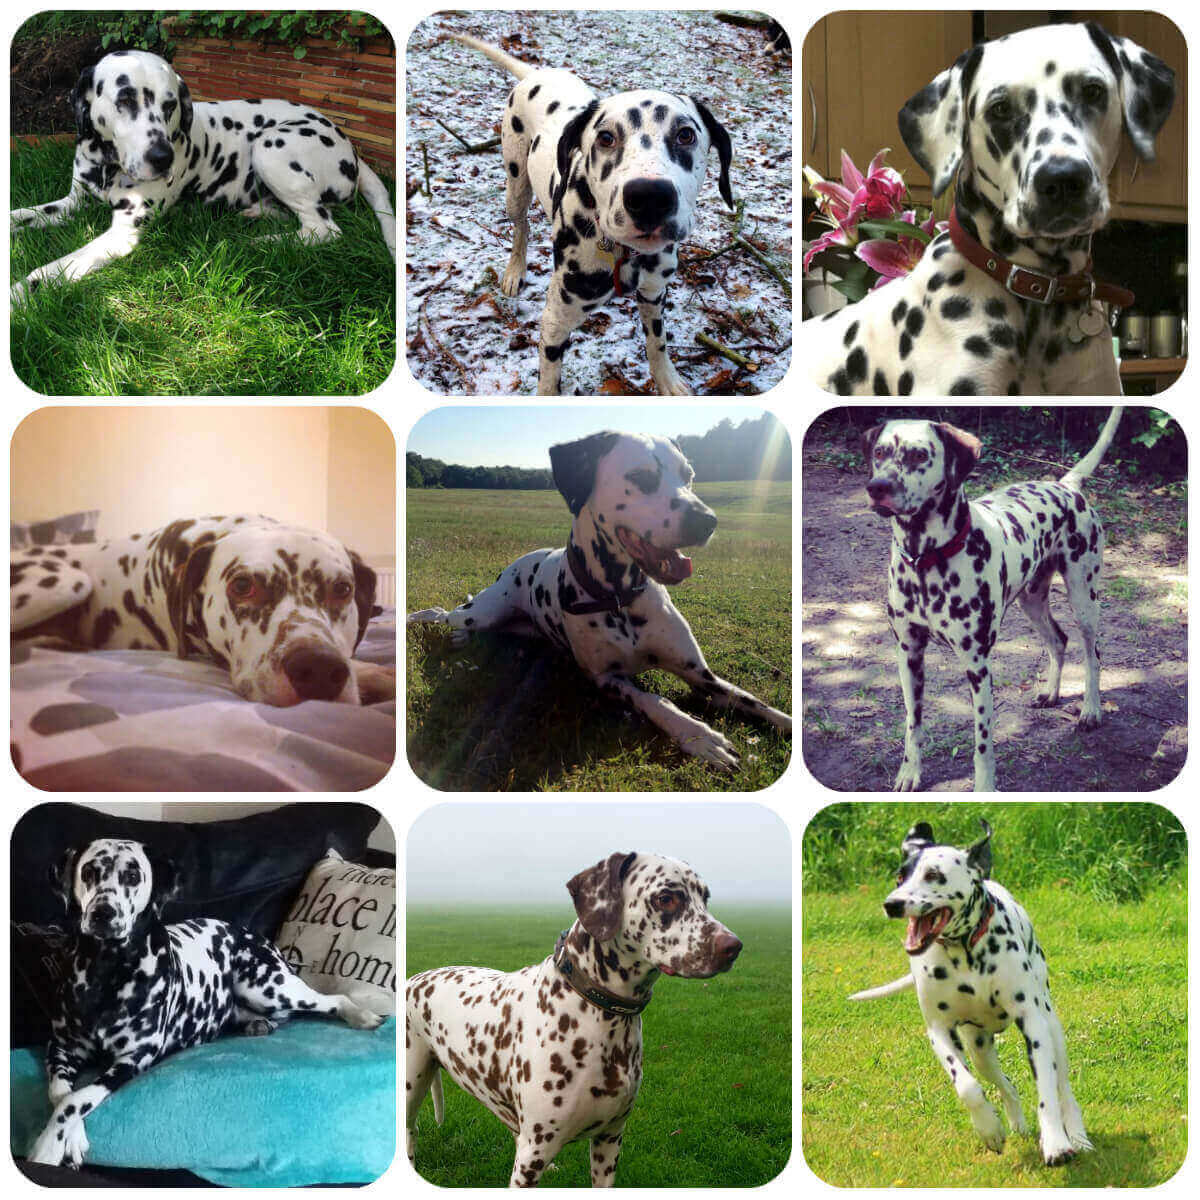 a collage of dalmatian dogs and puppies, part of borrowmydoggy's guide to dog breeds.